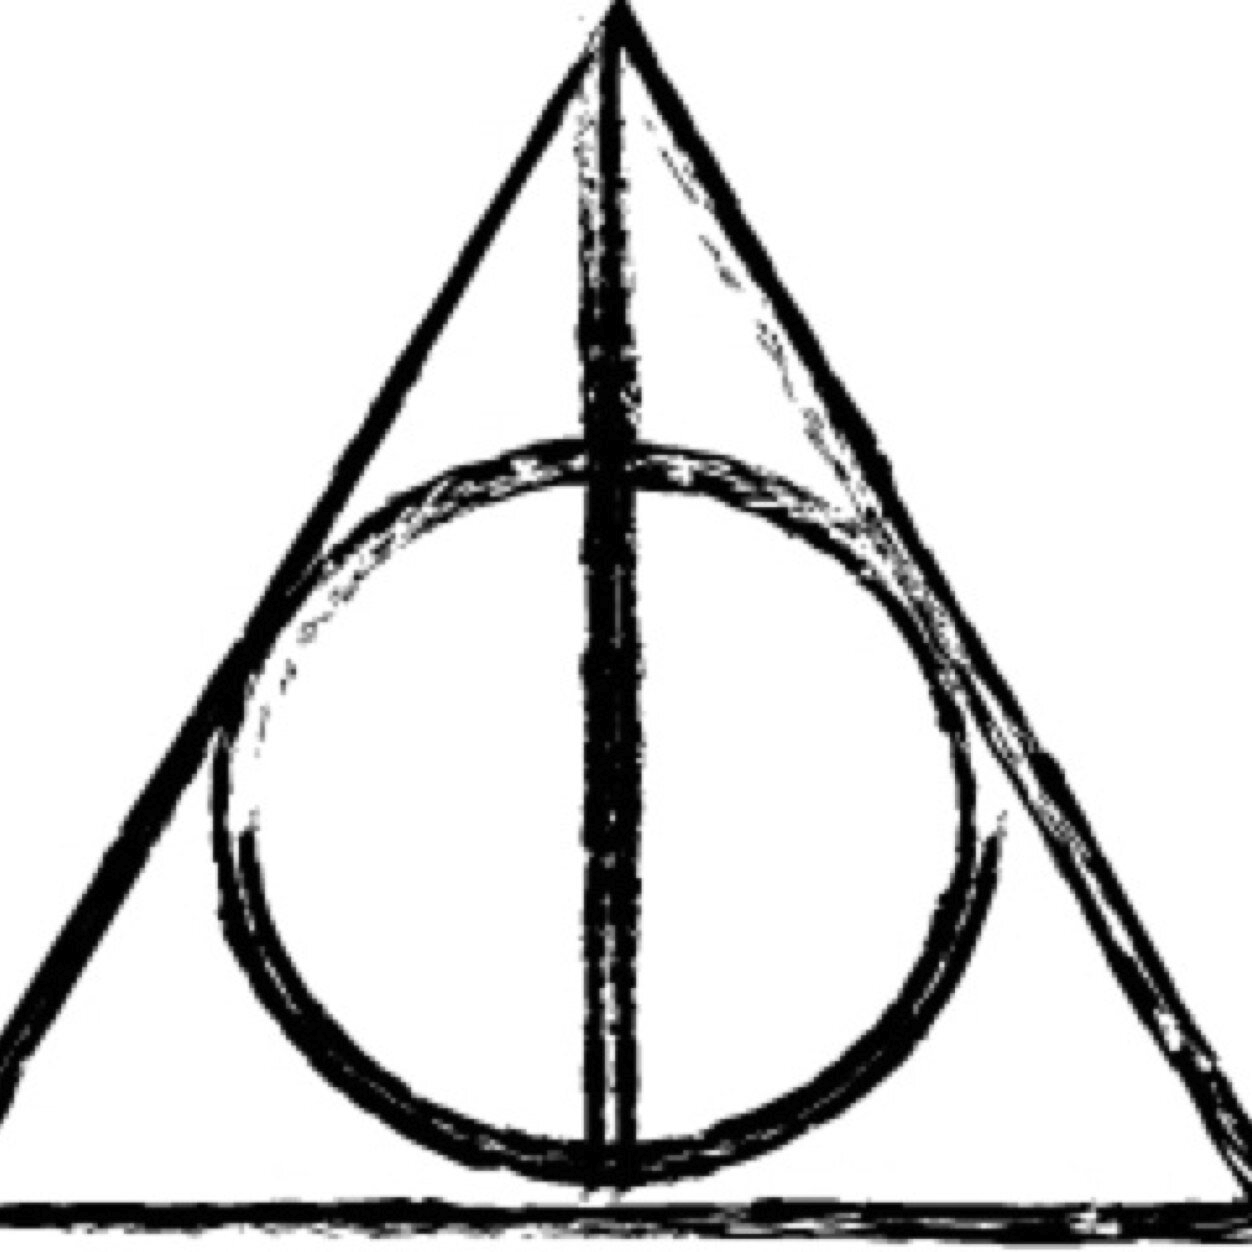 Harry potter and the deathly hallow harry potter and the deathly hallows biocorpaavc Images